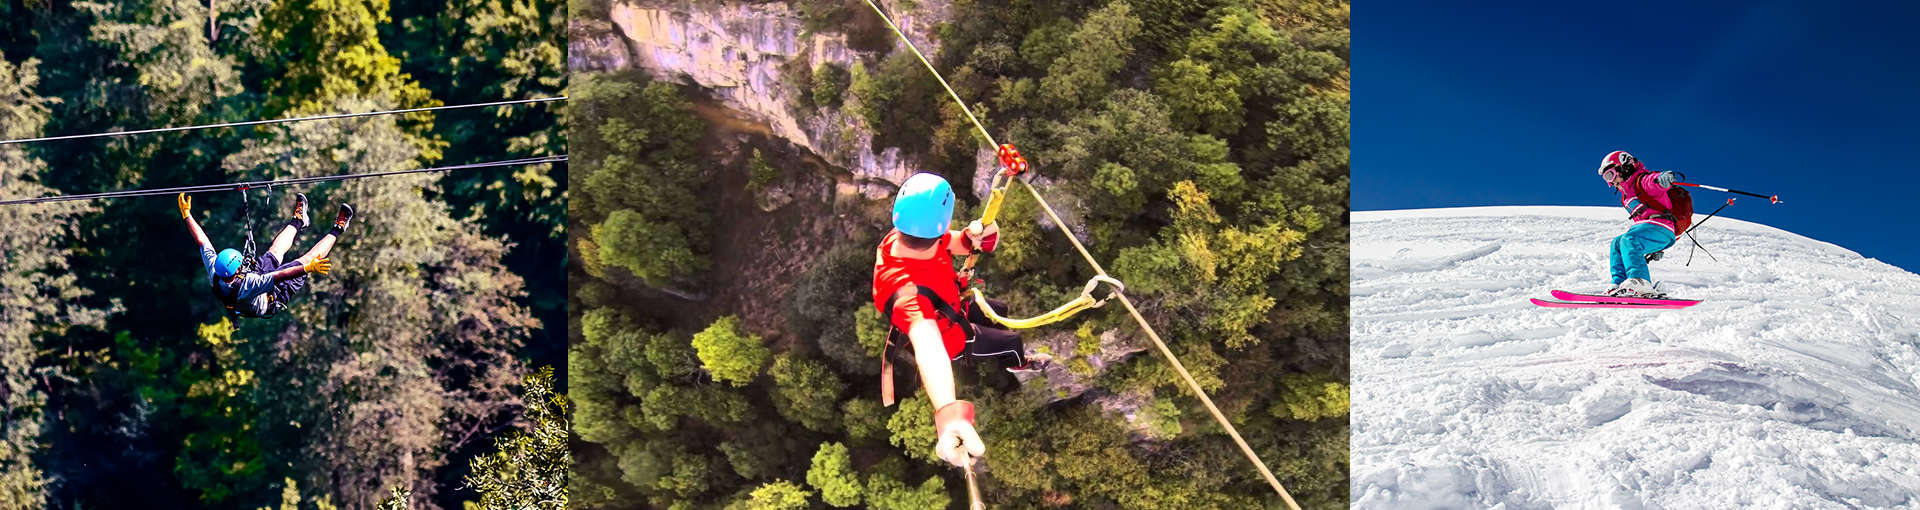 Extreme in Armenia.  How to pass a dynamic and unforgettable time?